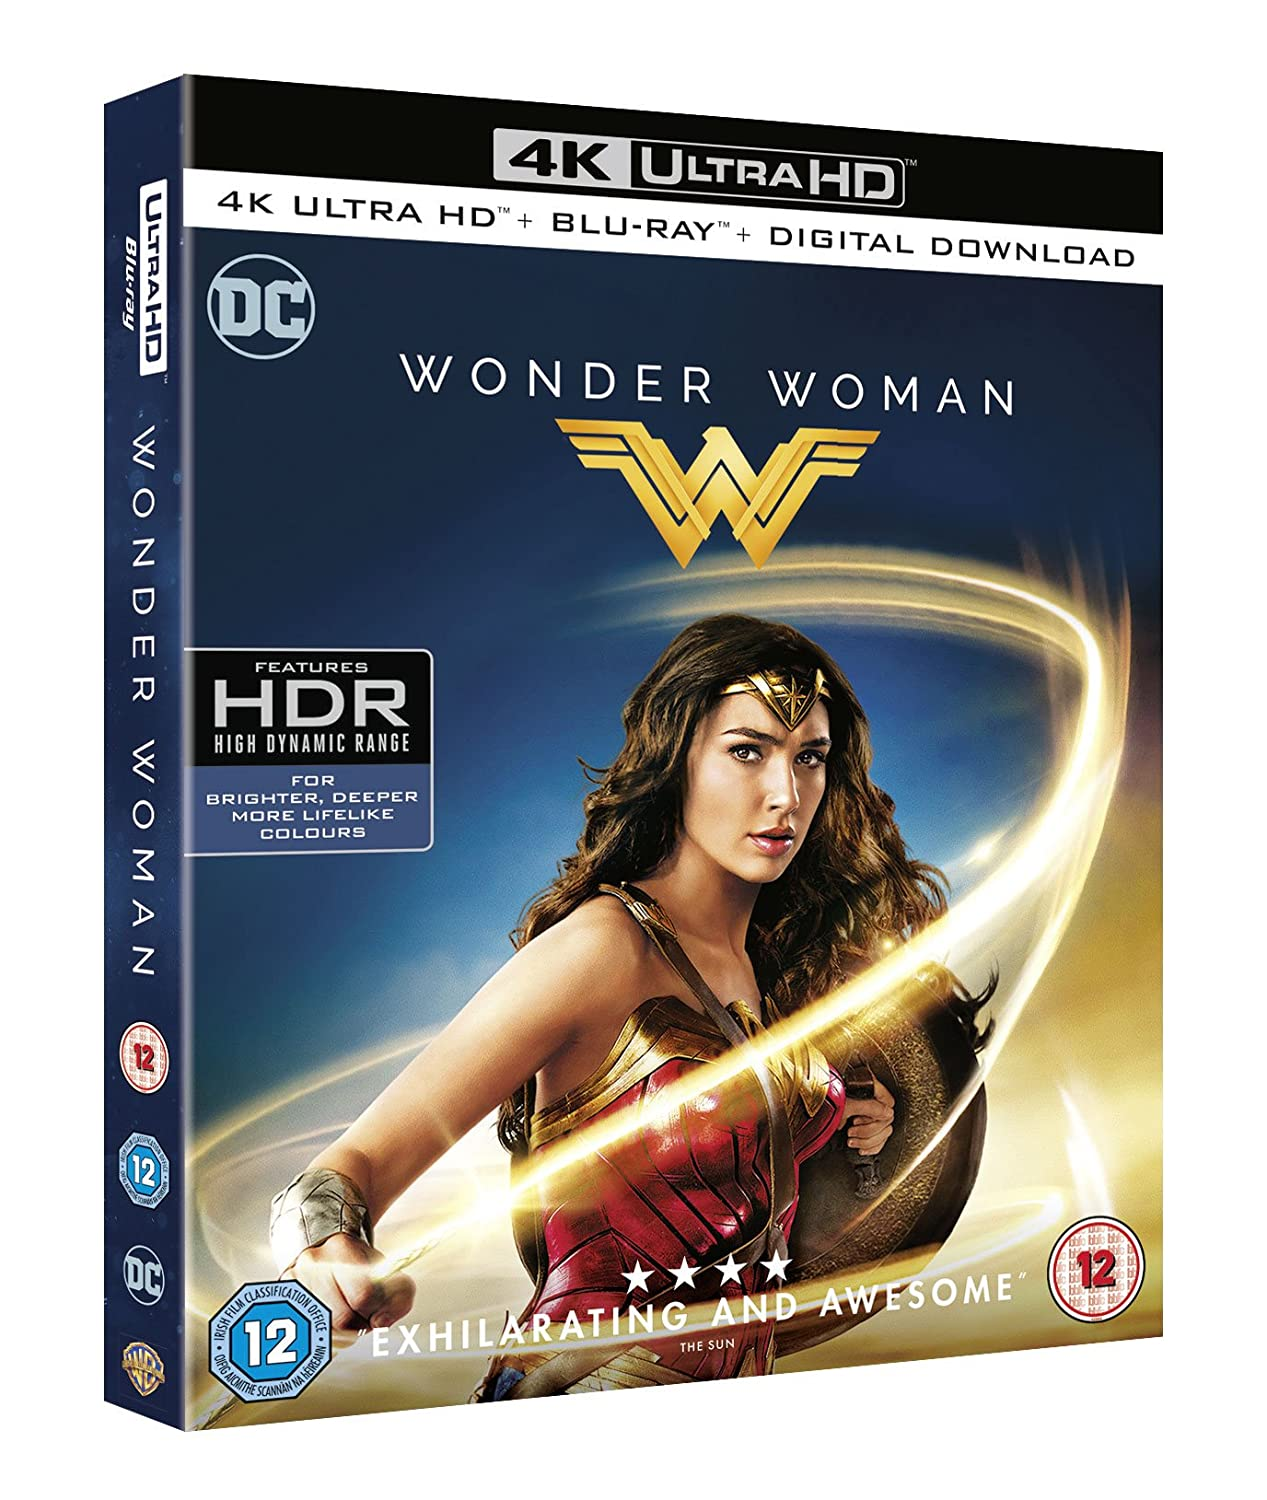 Amazon. Com: wonder woman [blu-ray 3d + blu-ray + digital download.